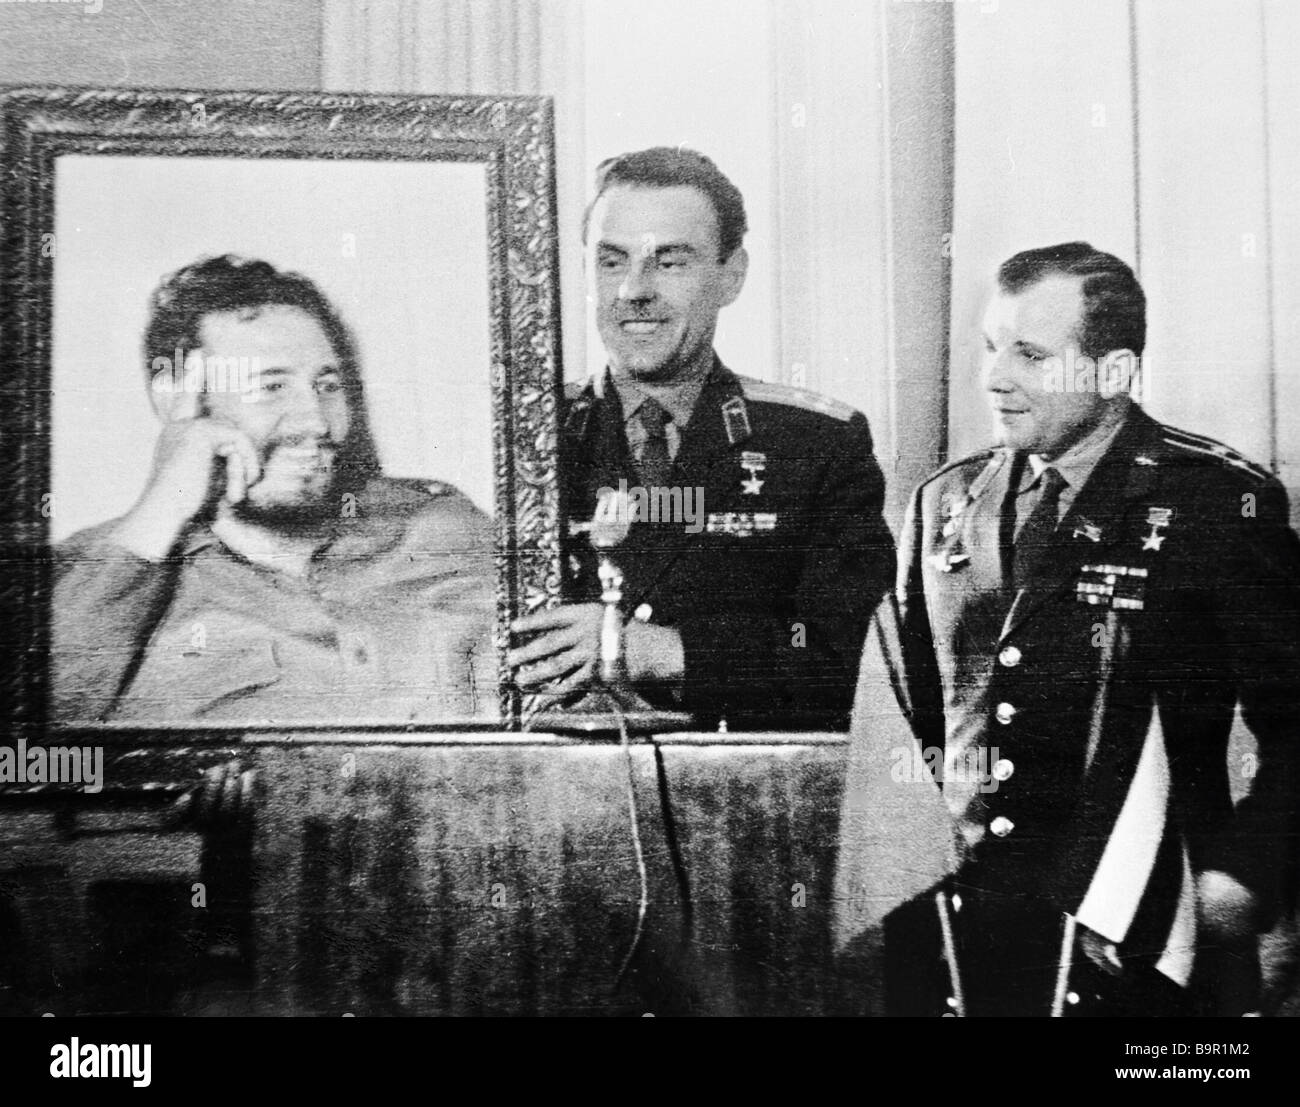 yuri gagarin and vladimir komarov - photo #3